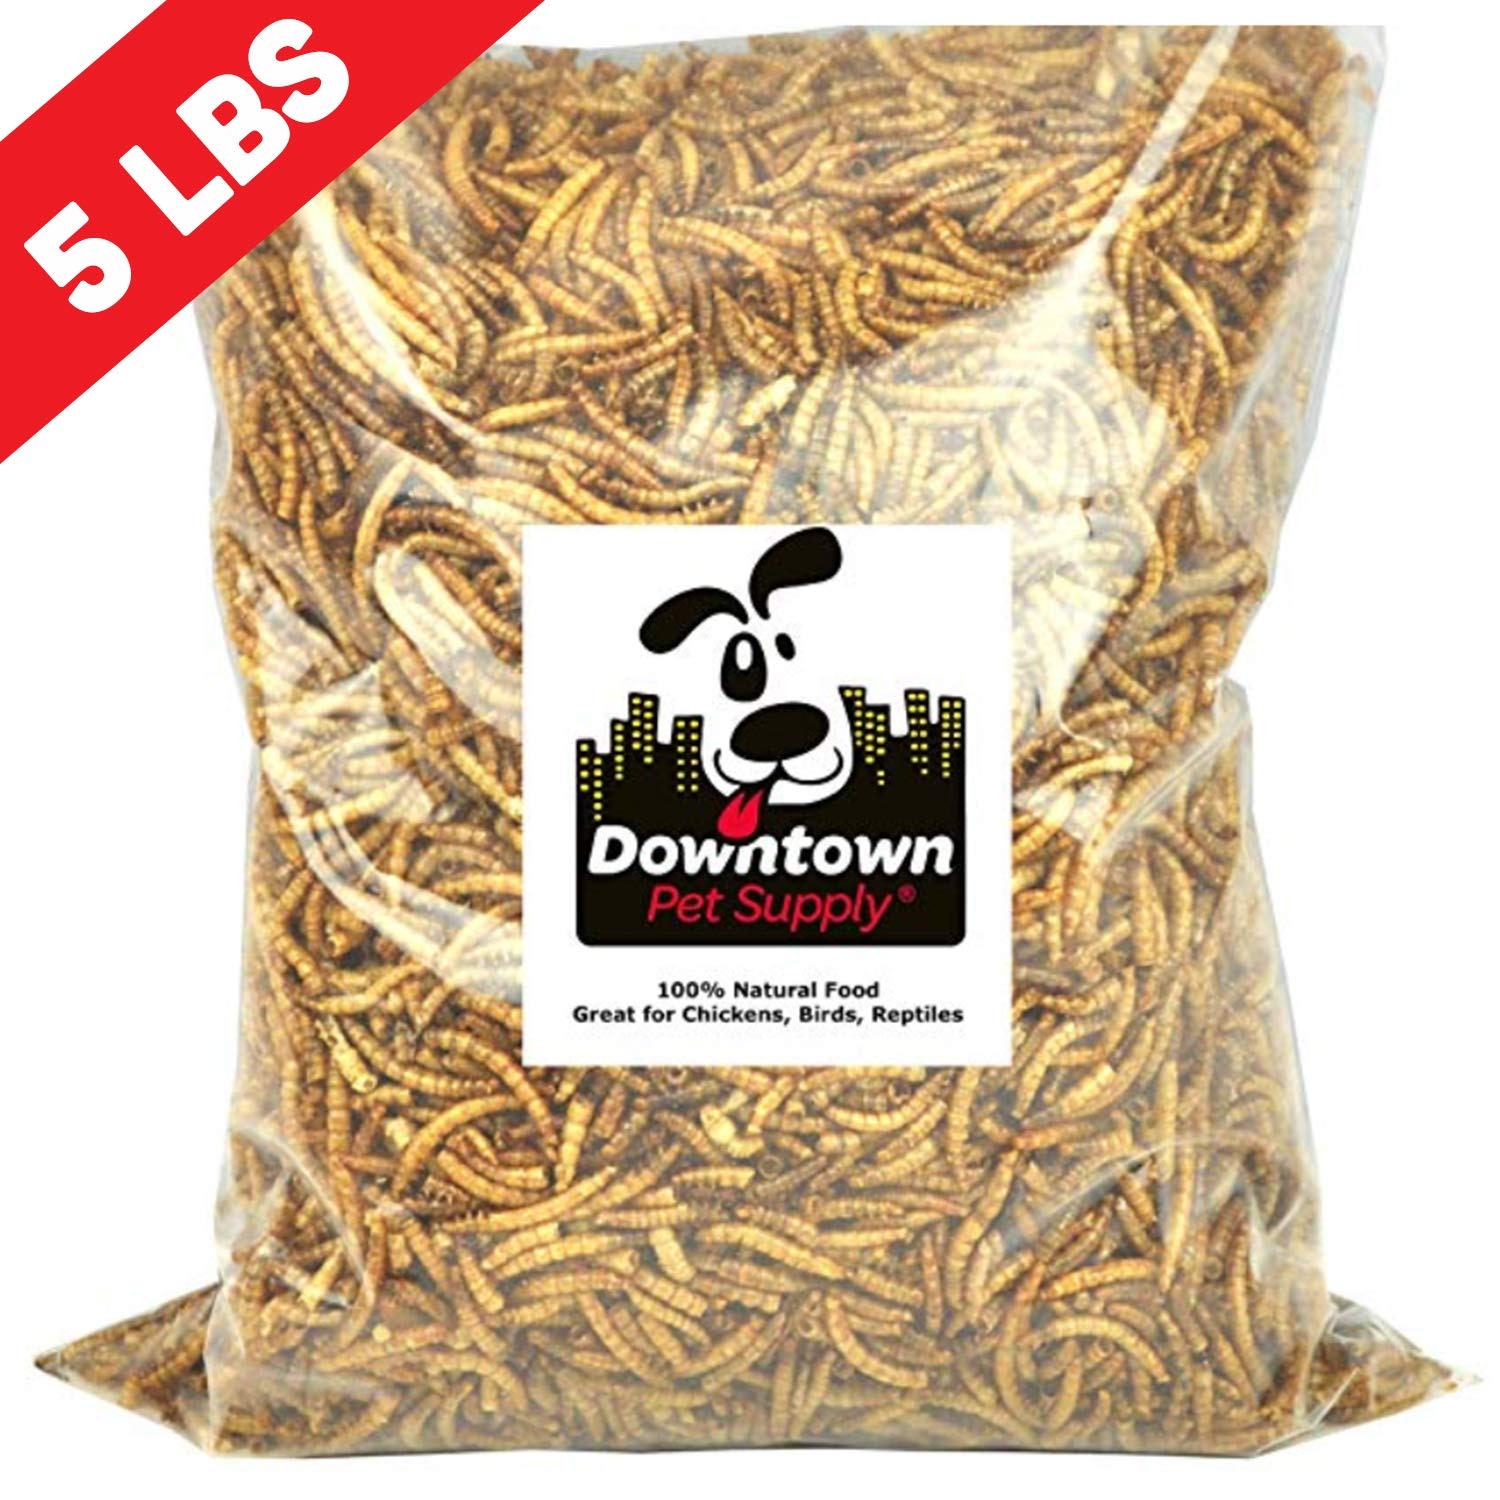 Downtown Pet Supply Dried Mealworms 100% Natural Treats for Wild Birds, Chickens, Reptiles, Fish, Turtles - Meal Worms Dried Food for Birds, Turkeys (5 LB) by Downtown Pet Supply